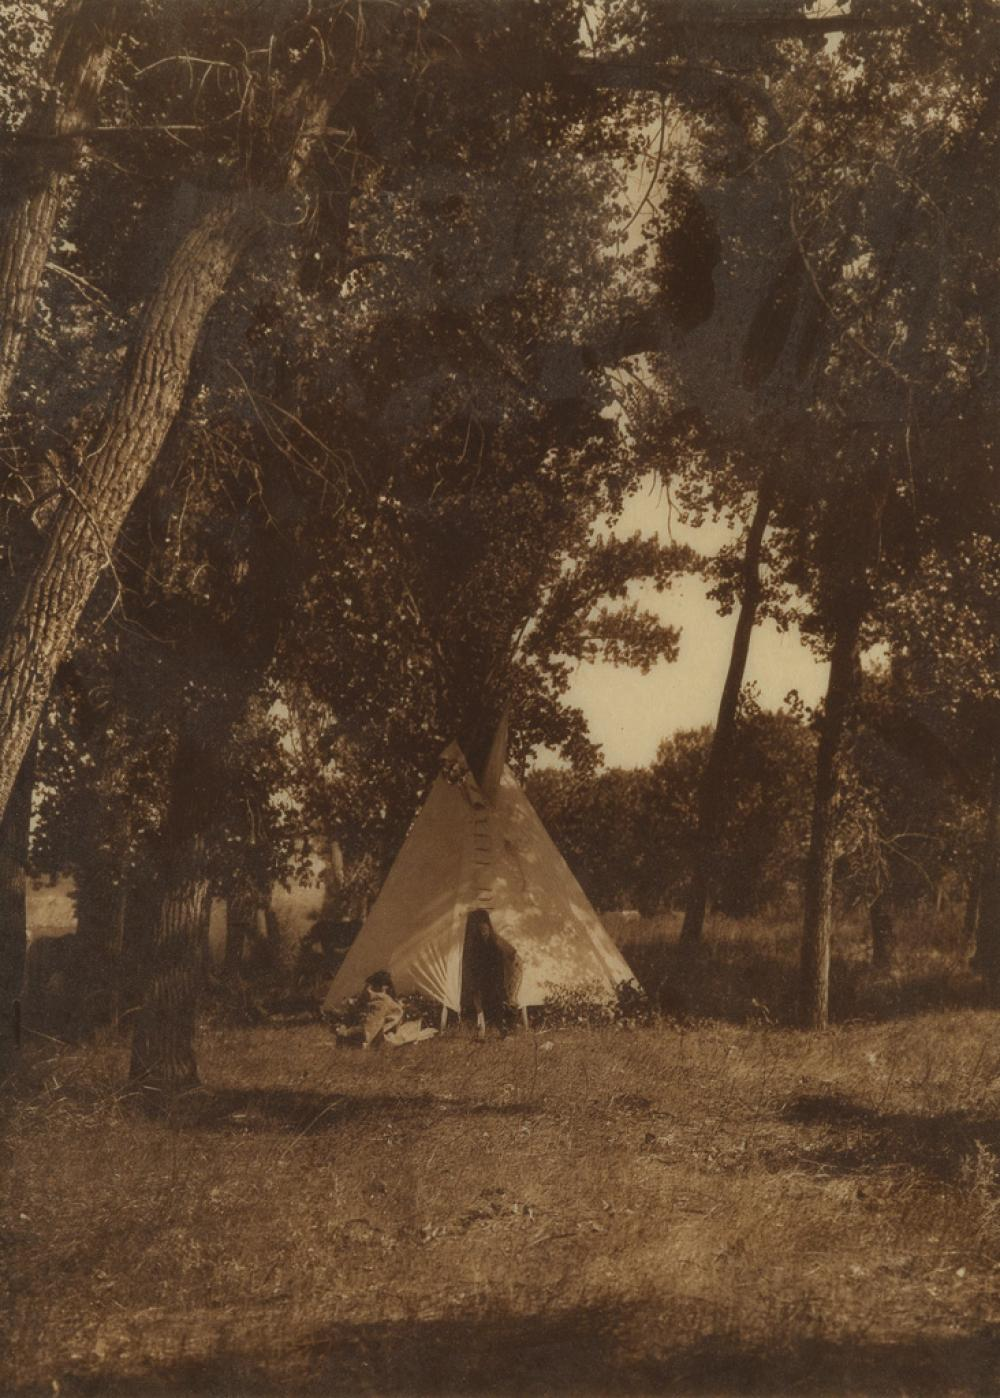 EDWARD S. CURTIS (1868-1952) Camp in the Cottonwoods, Cheyenne, plate 217 from The North American Indian.